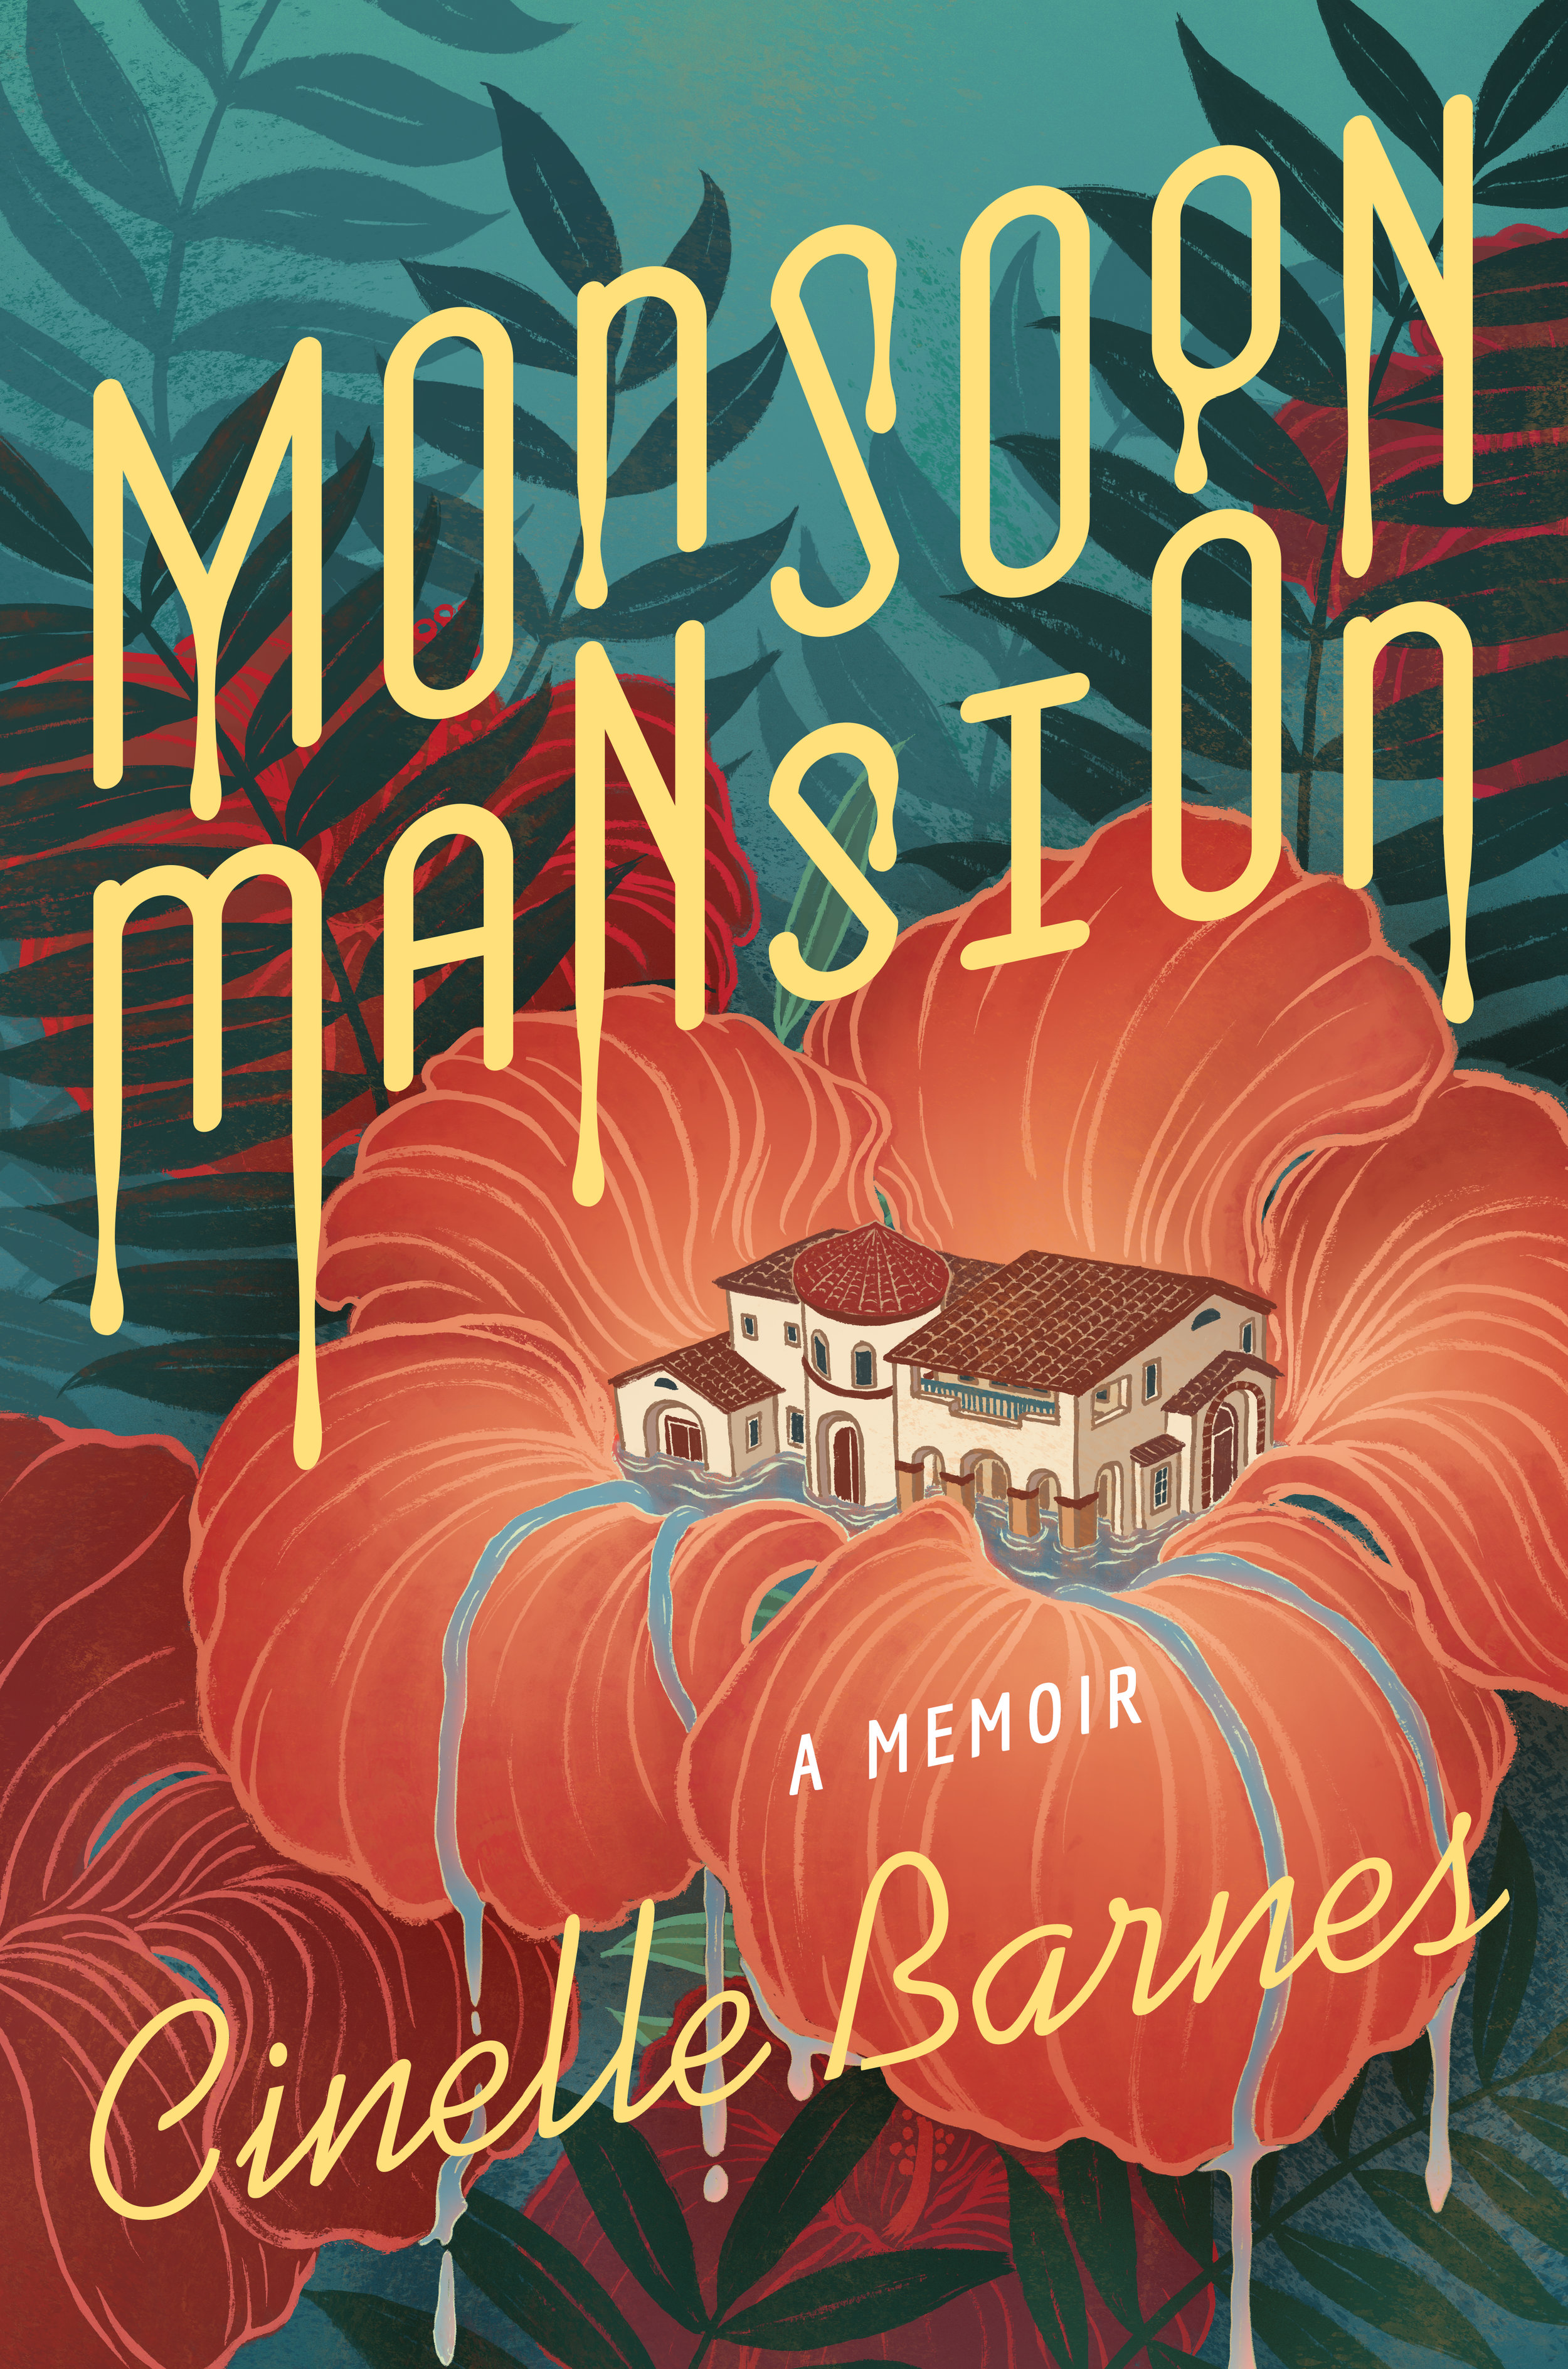 Monsoon Mansion: A Memoir (Little A, 2018) - Booklist Starred Review, Bustle 25 Best Nonfiction Books of 2018, Reading Women Nonfiction Award NomineeVideo: Monsoon Mansion: A Memoir + Cinelle Barnes, Amazon Publishing